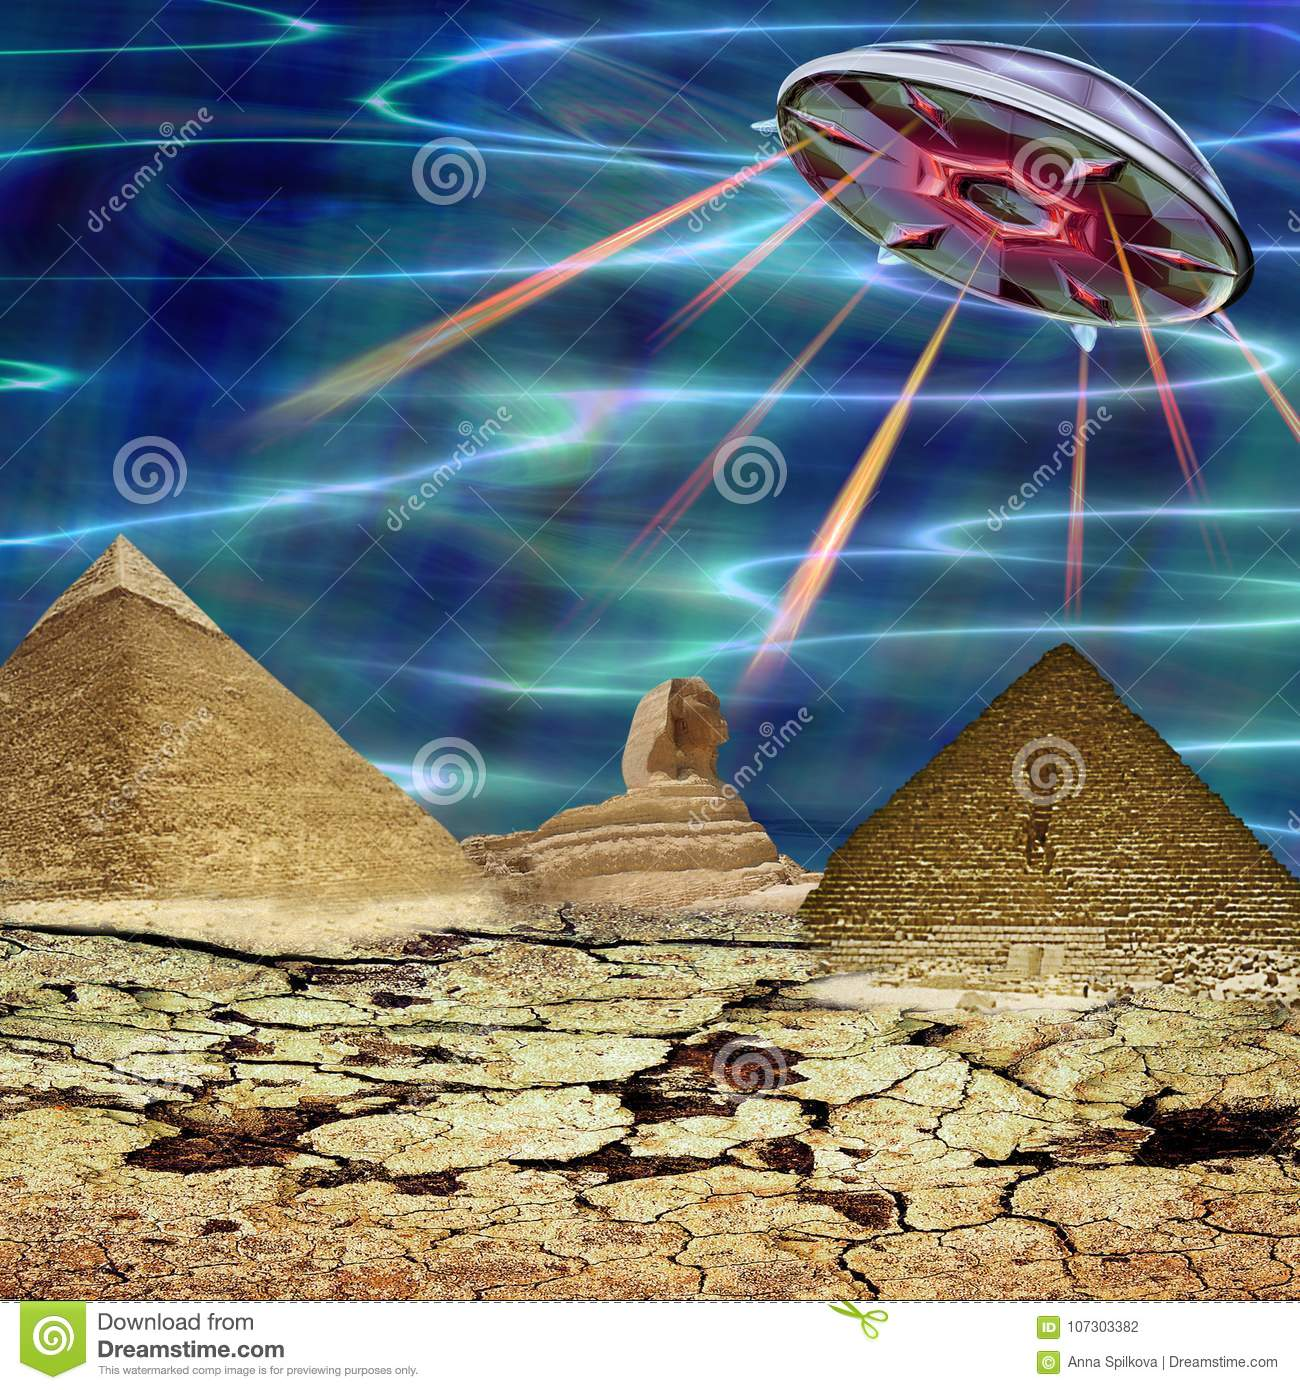 Unidentified flying object landing in a cracked landscape. Unknown object flying over pyramids and sphinx. 3d illustration